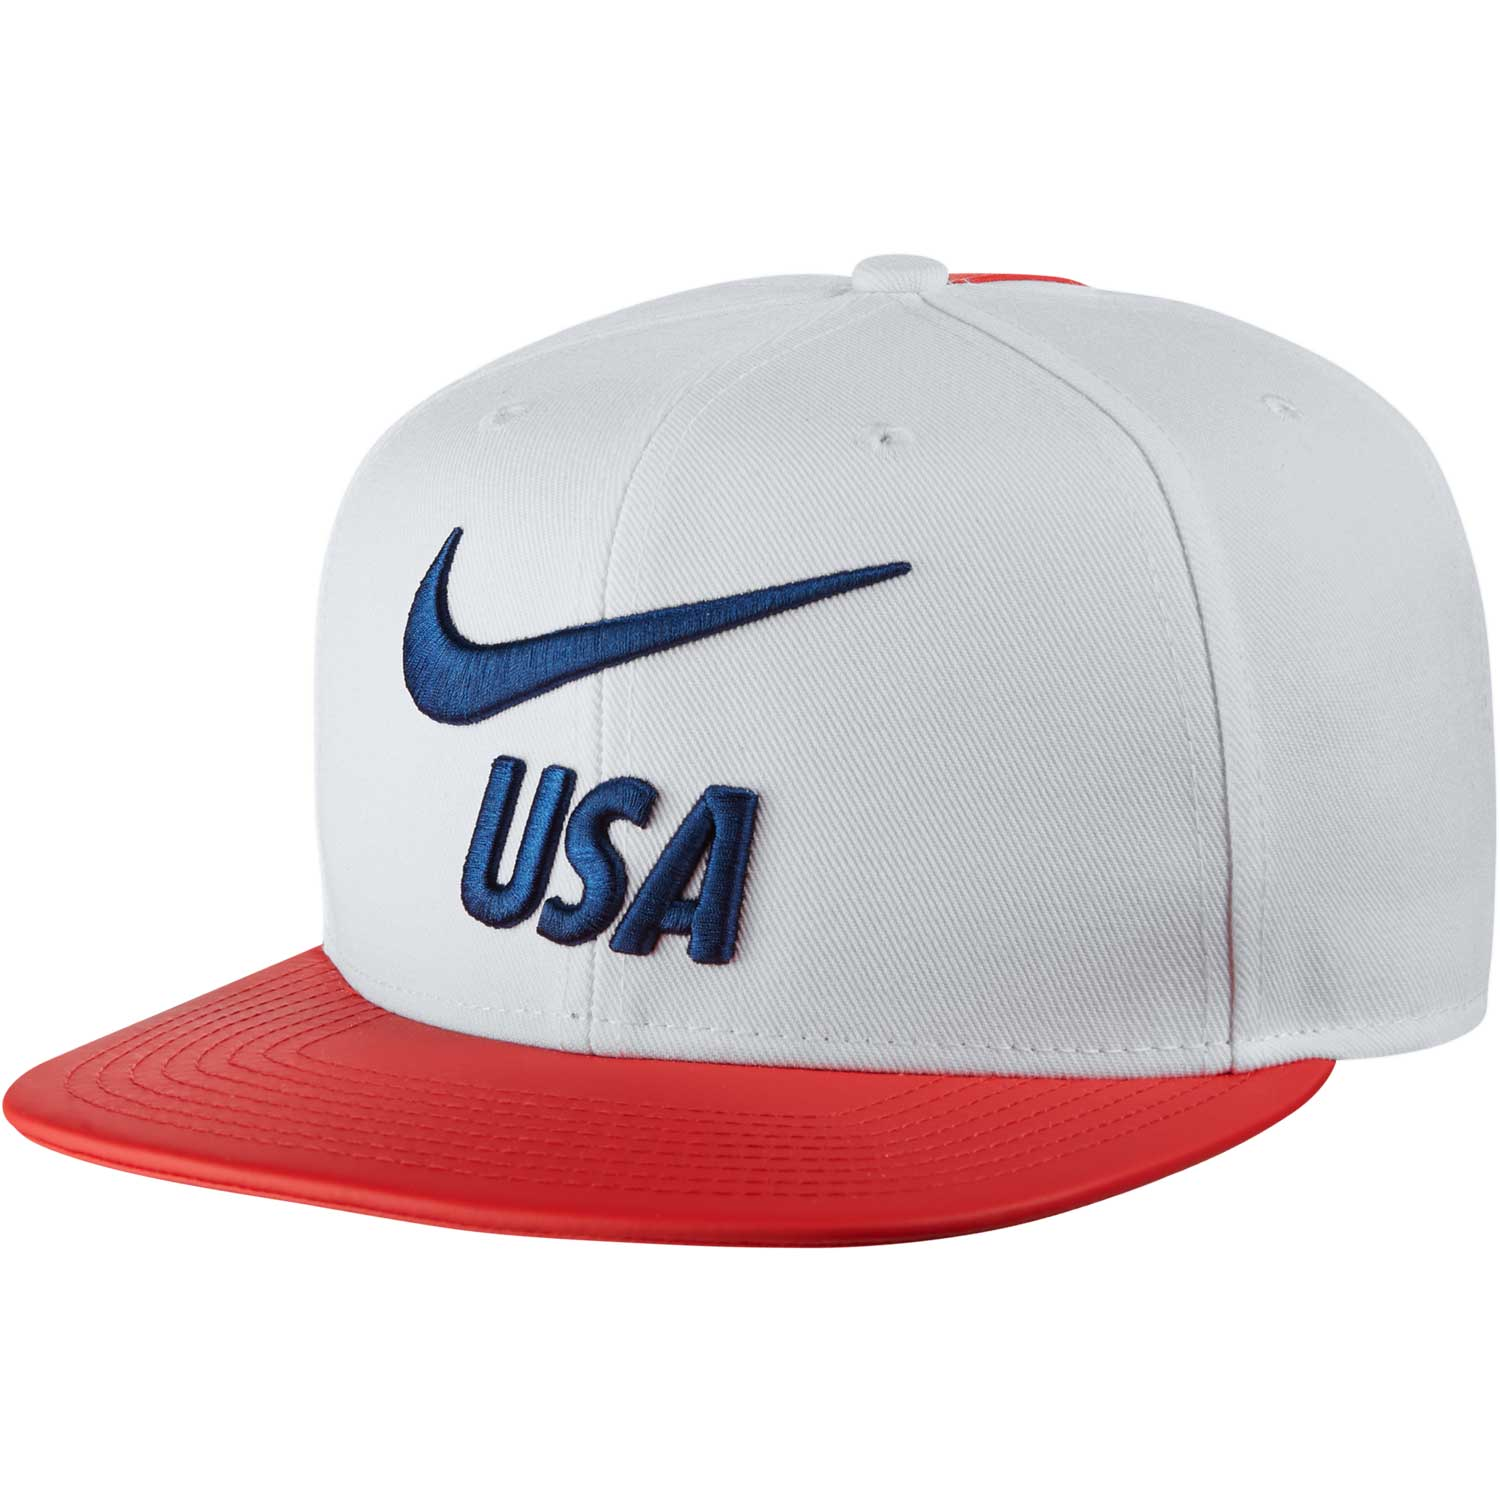 324a0a8c85d2e Nike USA Pride Flat Bill Cap - White Speed Red Gym Blue - SoccerPro